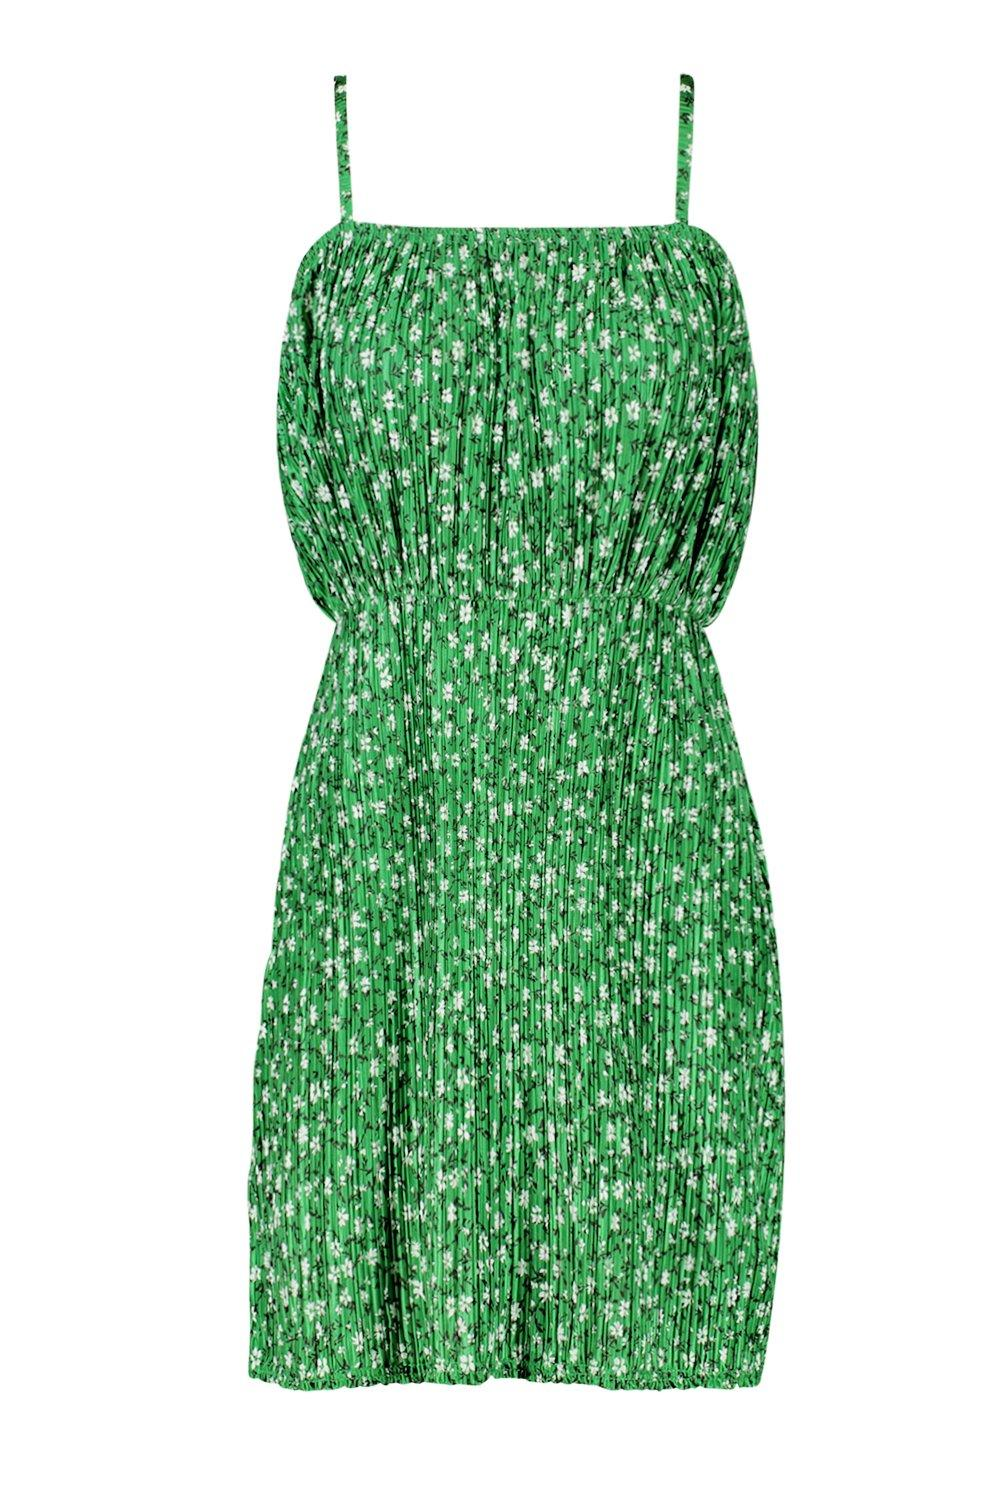 Floral Floral Dress Tall green green Tall Tall Dress Print Print xUqYwP